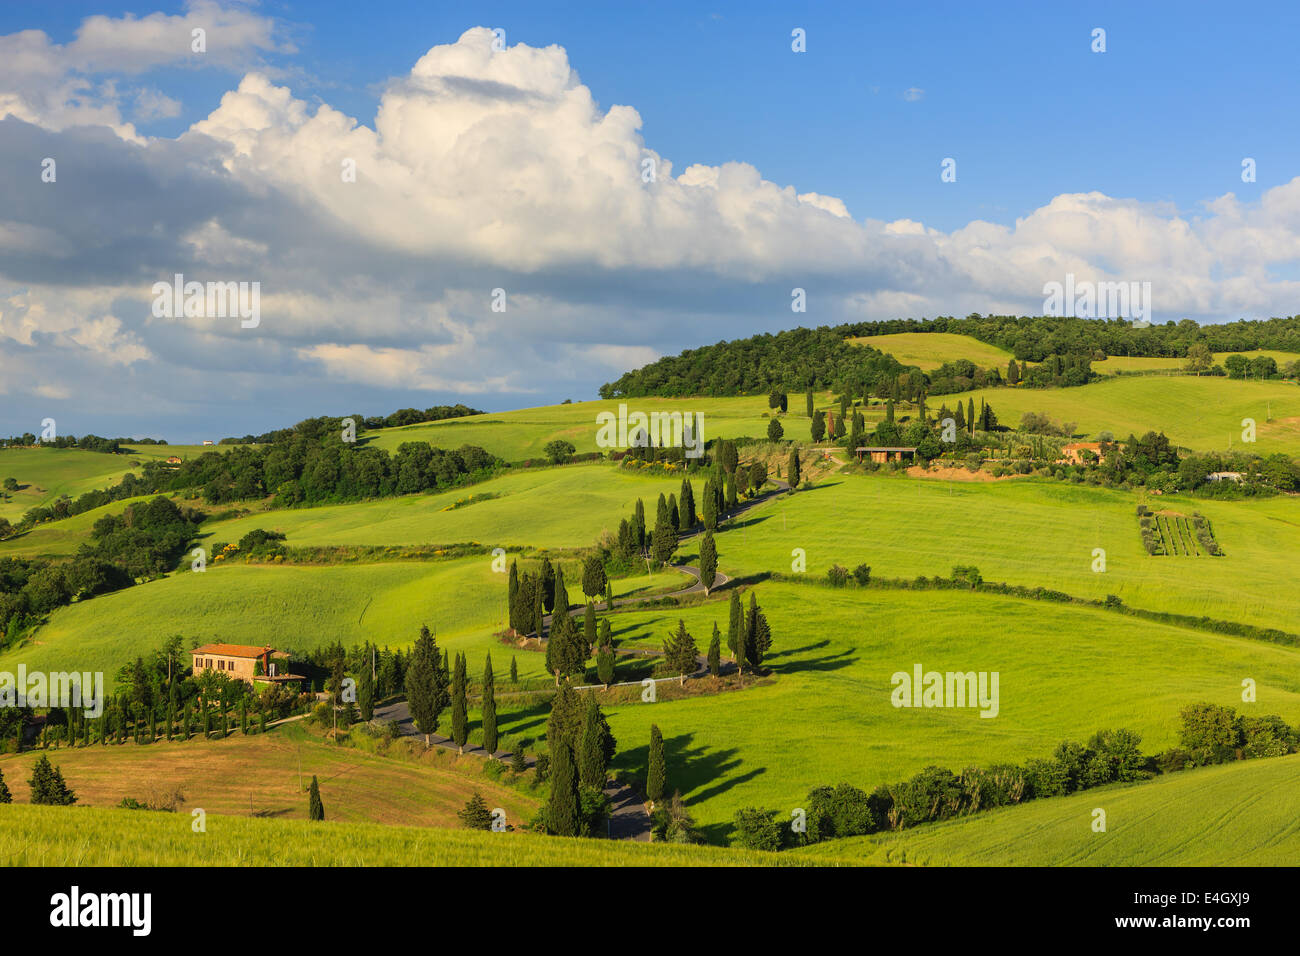 Winding road near Monticchiello with the famous Cypress trees in the heart of the Tuscany, Italy Stock Photo